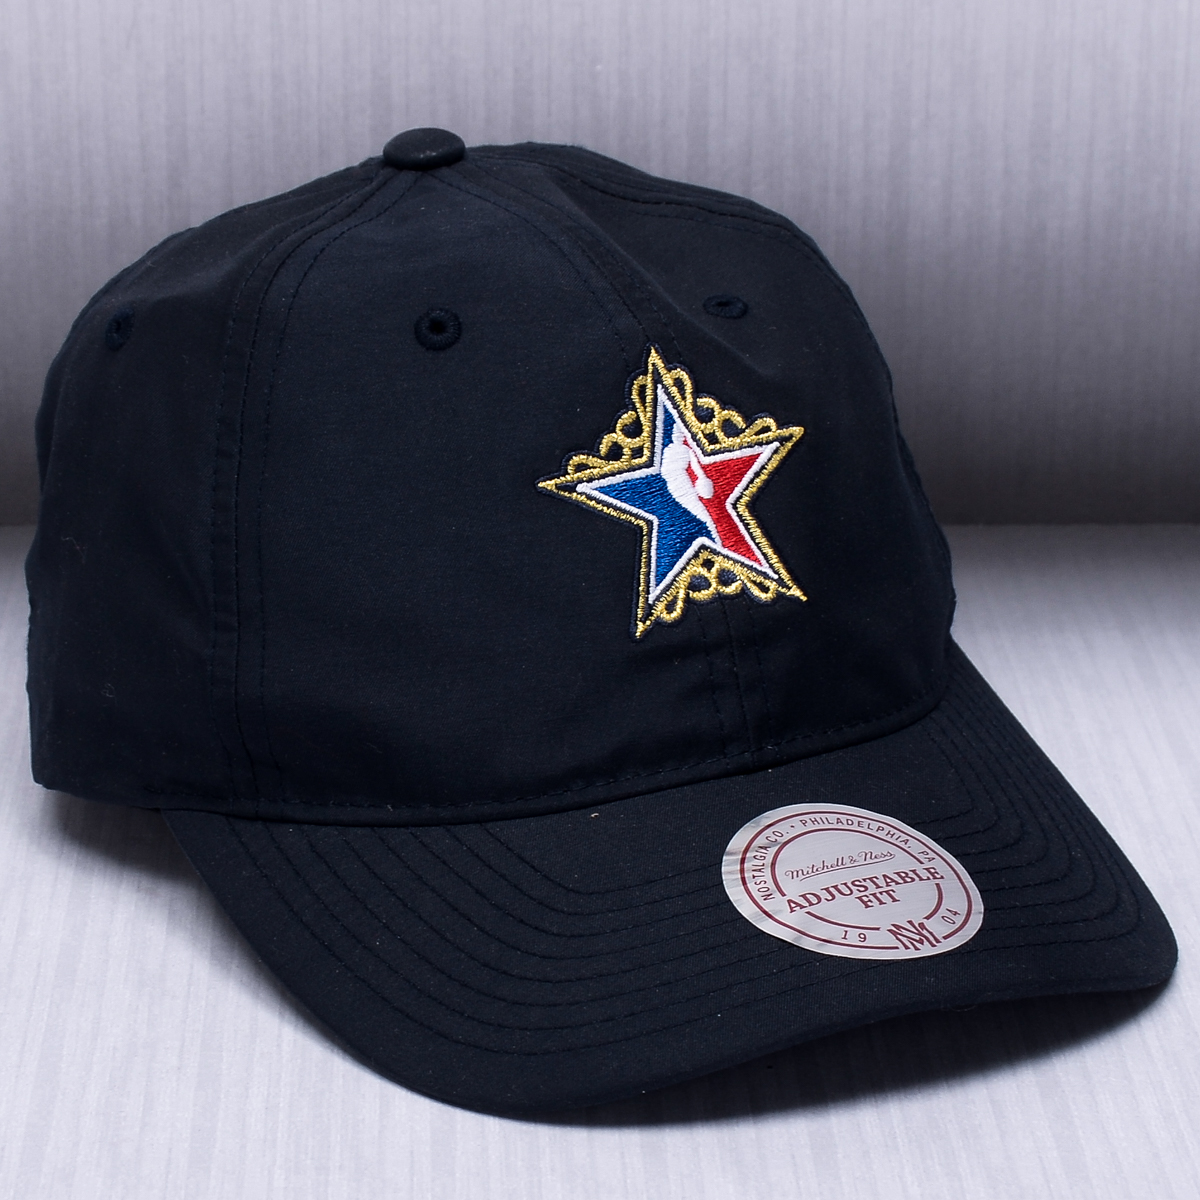 abaaf420a7d Mitchell   Ness NBA All-Star Peached Oxford Dad Cap - NBA Shop Others NBA  Clubs Merchandise - Superfanas.lt